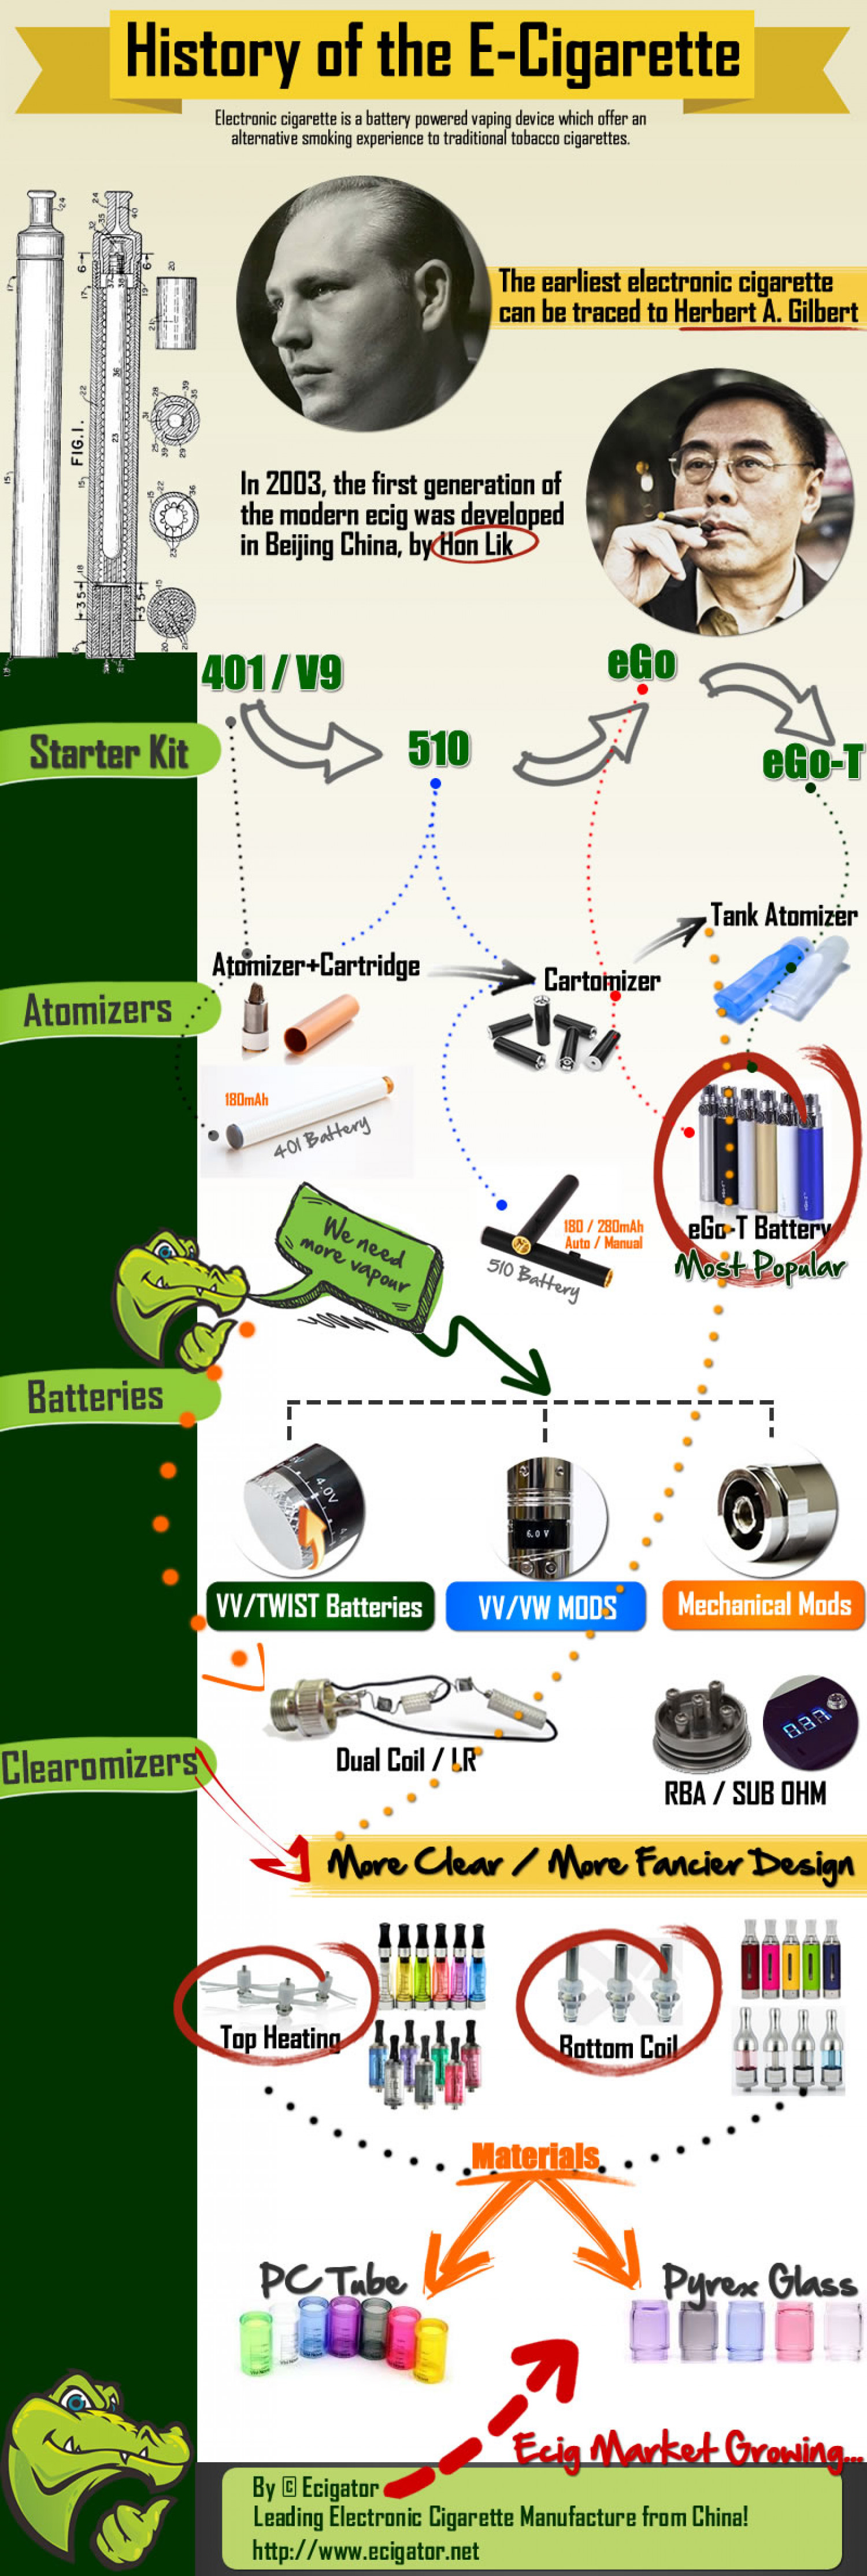 The History of Electronic Cigarette Infographic